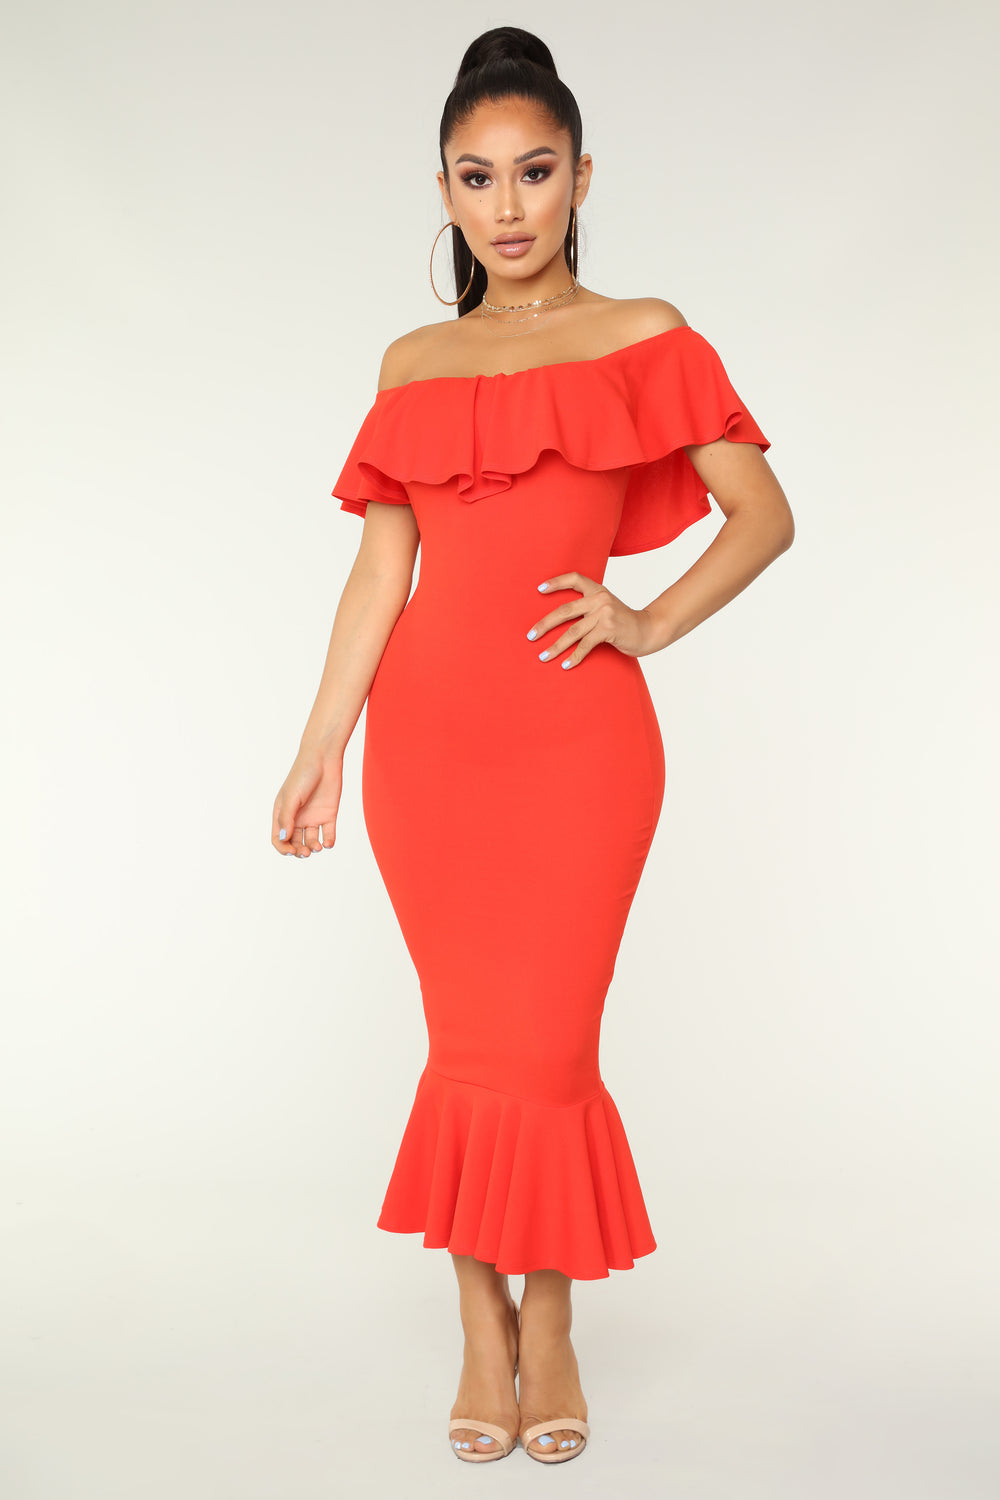 Moments Like This Ruffle Dress - Coral Red